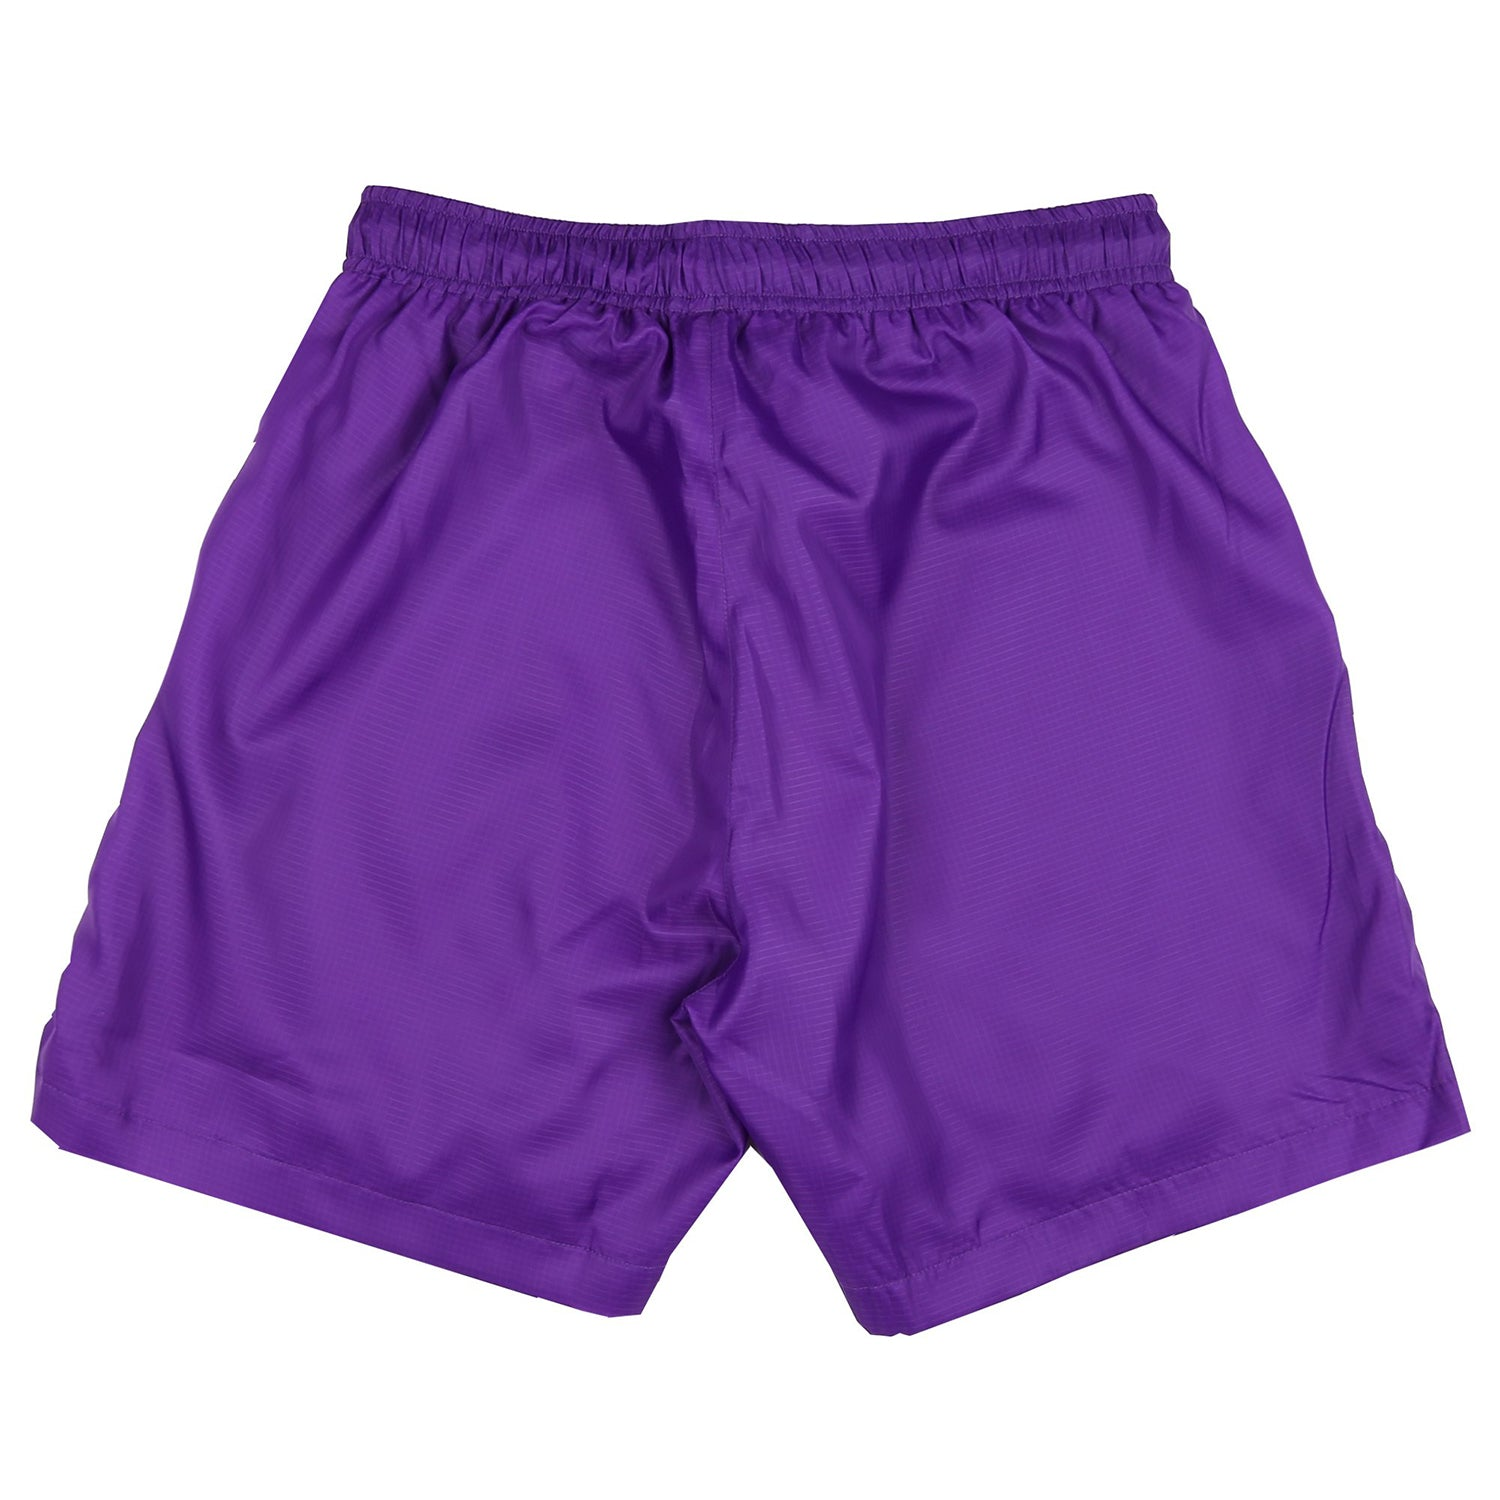 NYLON RIPSTOP SHORTS